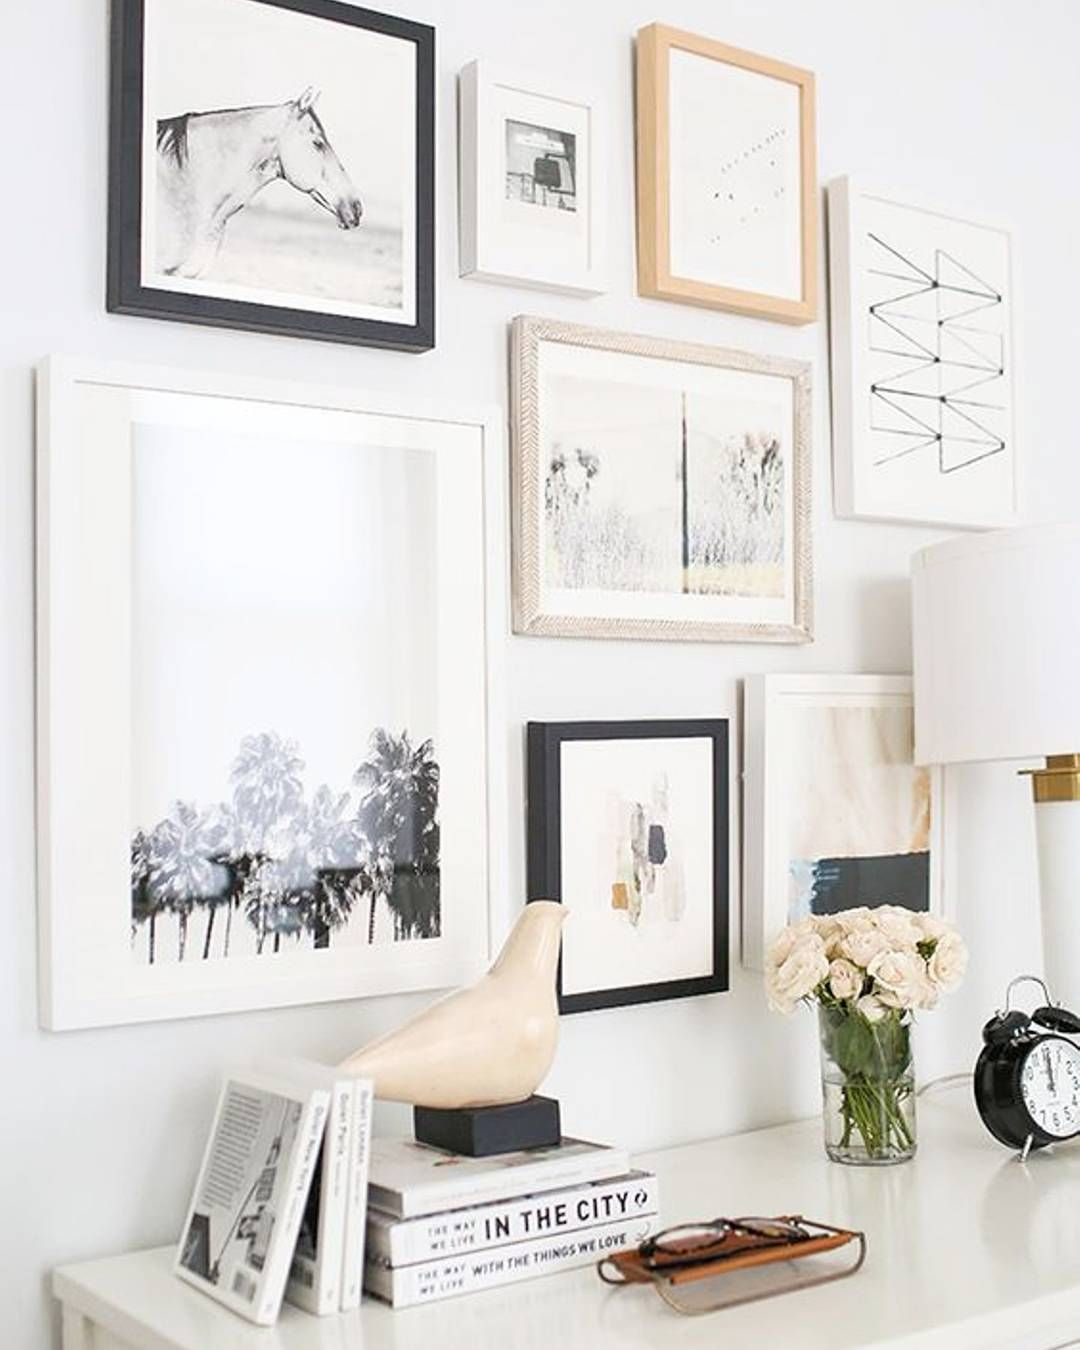 The Key To Wall Art Is To Mix And Match Frame Colors Sizes And Content On The Prints Black And White Always Seems To Make Home Decor Gallery Wall Minted Home